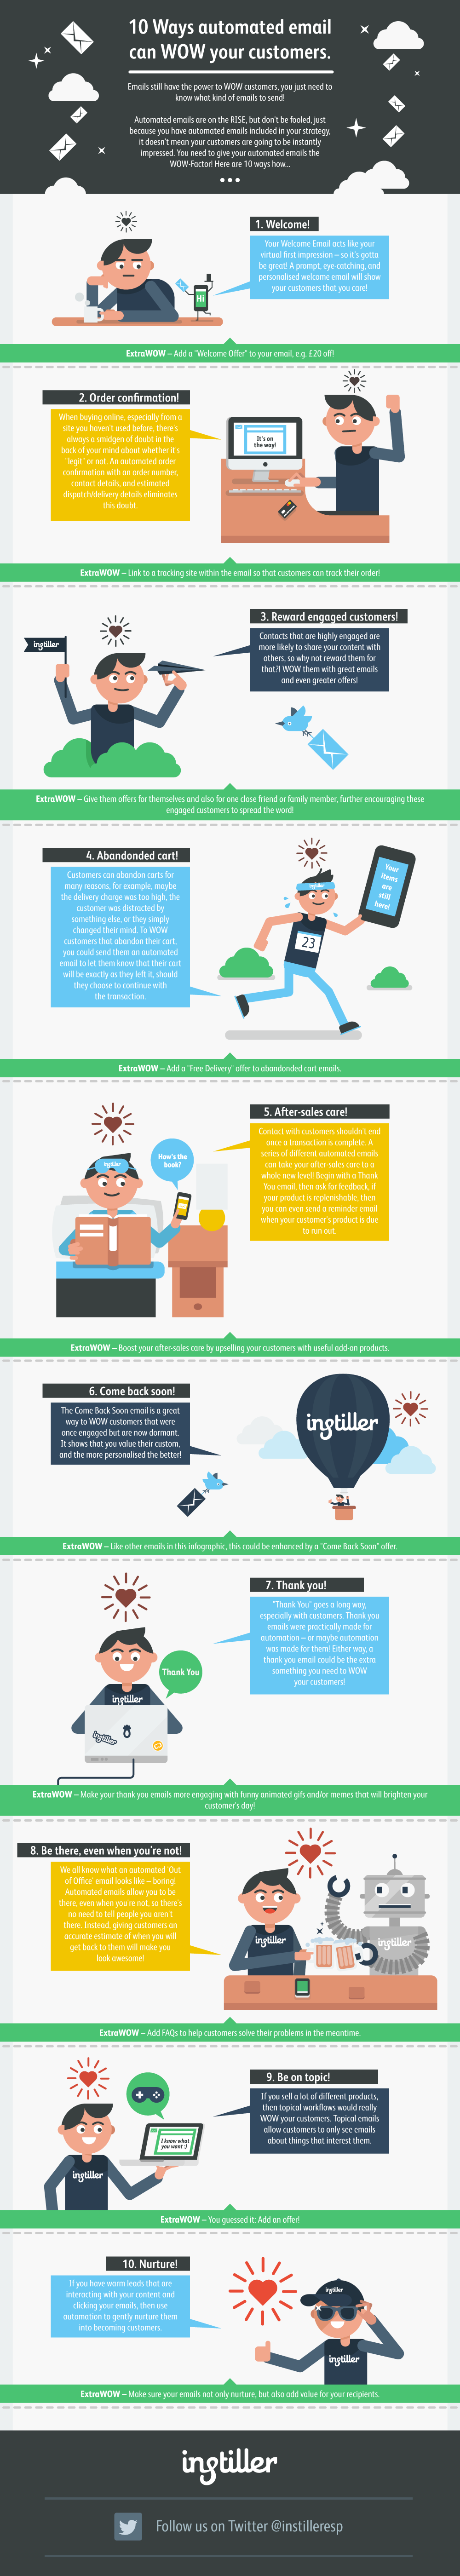 Instiller-10-Ways-Automated-Email-can-WOW-your-customers